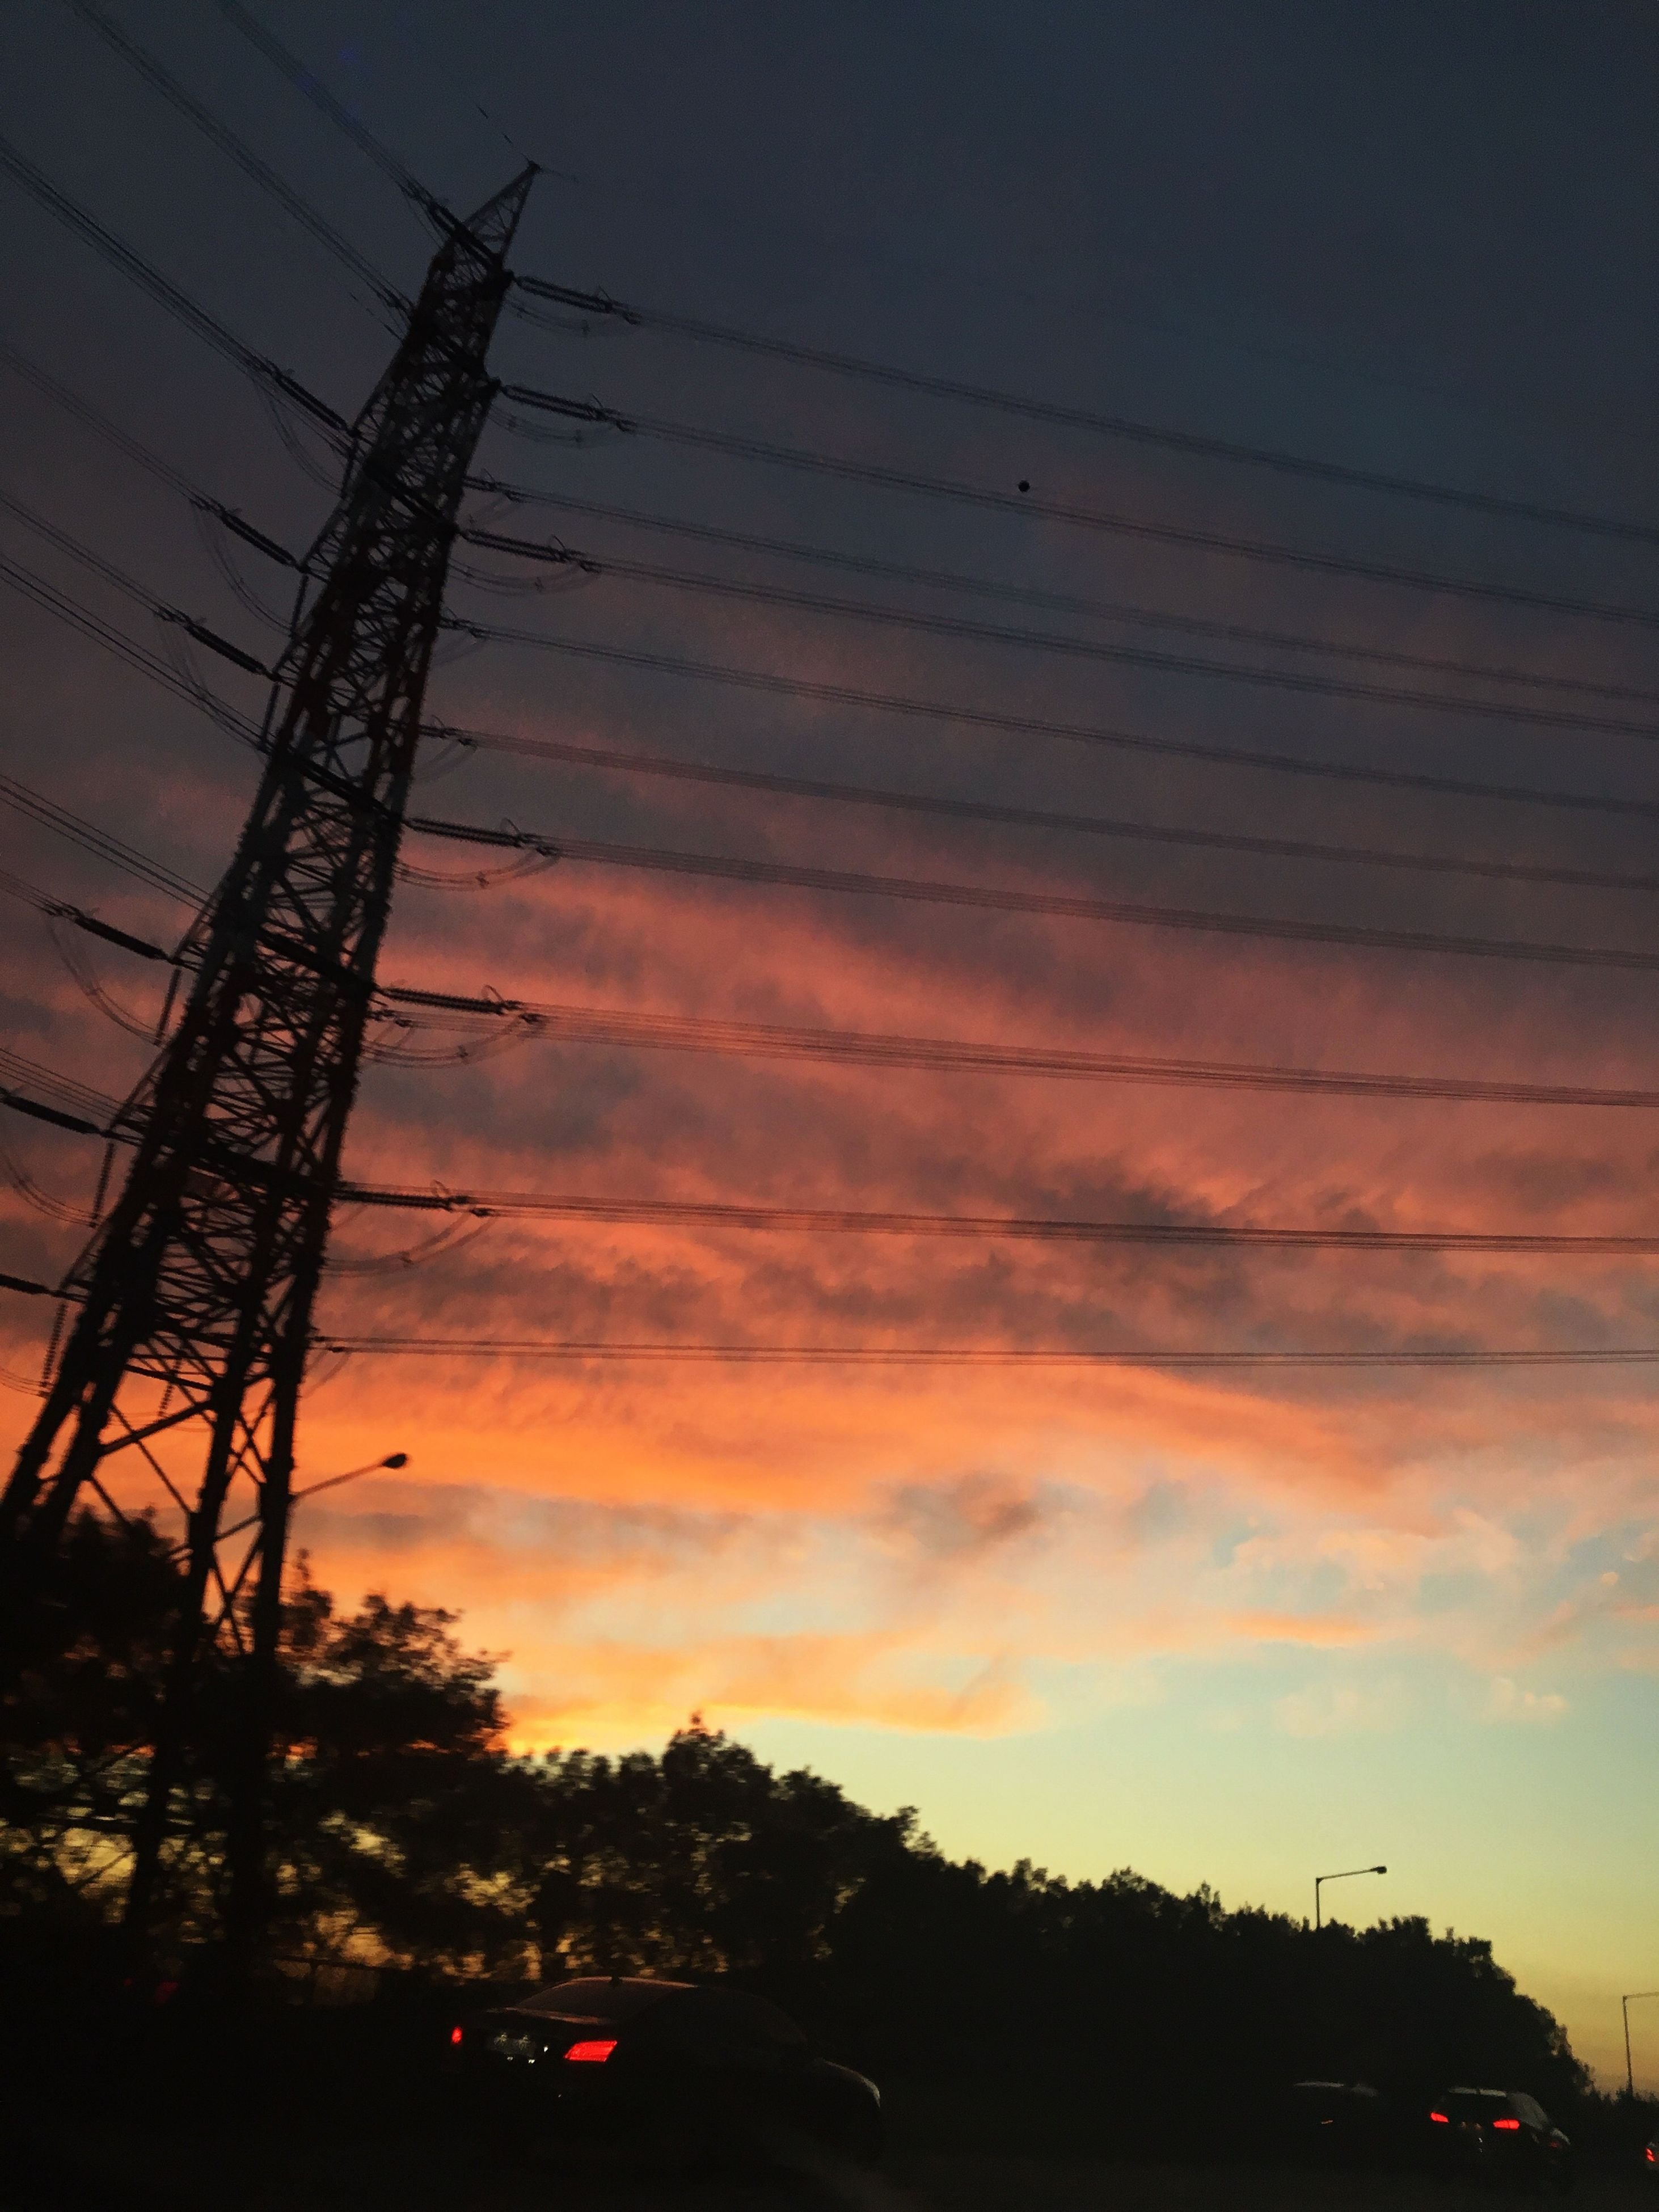 sunset, sky, tree, power line, dusk, orange color, cloud - sky, illuminated, nature, scenics, beauty in nature, outdoors, dramatic sky, cable, no people, cloud, tranquility, power supply, dark, tranquil scene, cloudy, idyllic